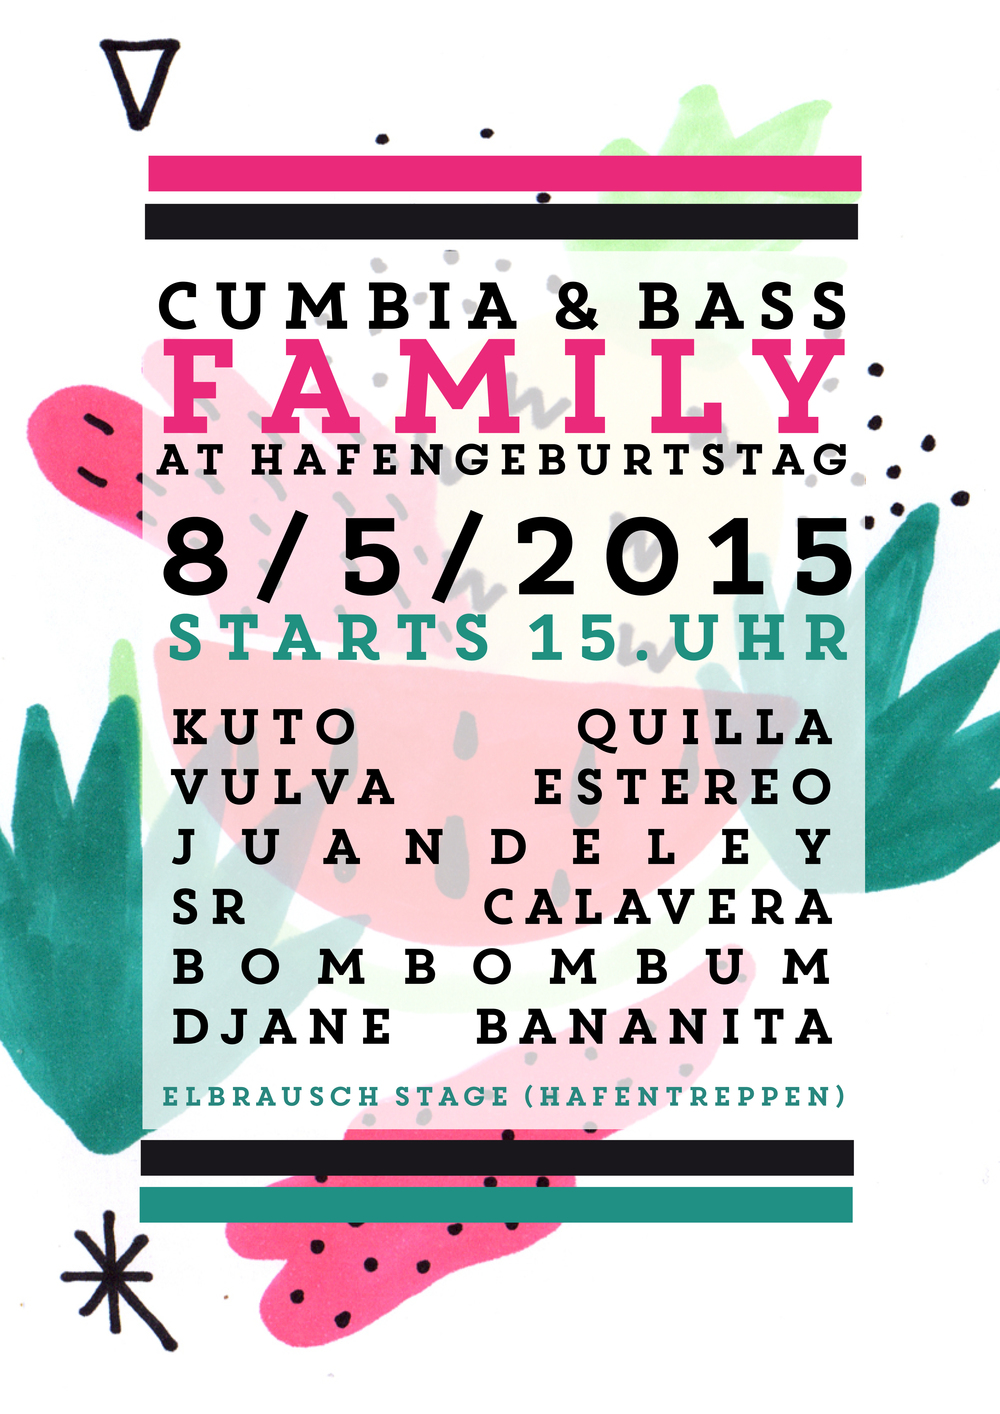 cumbia bass family.jpg